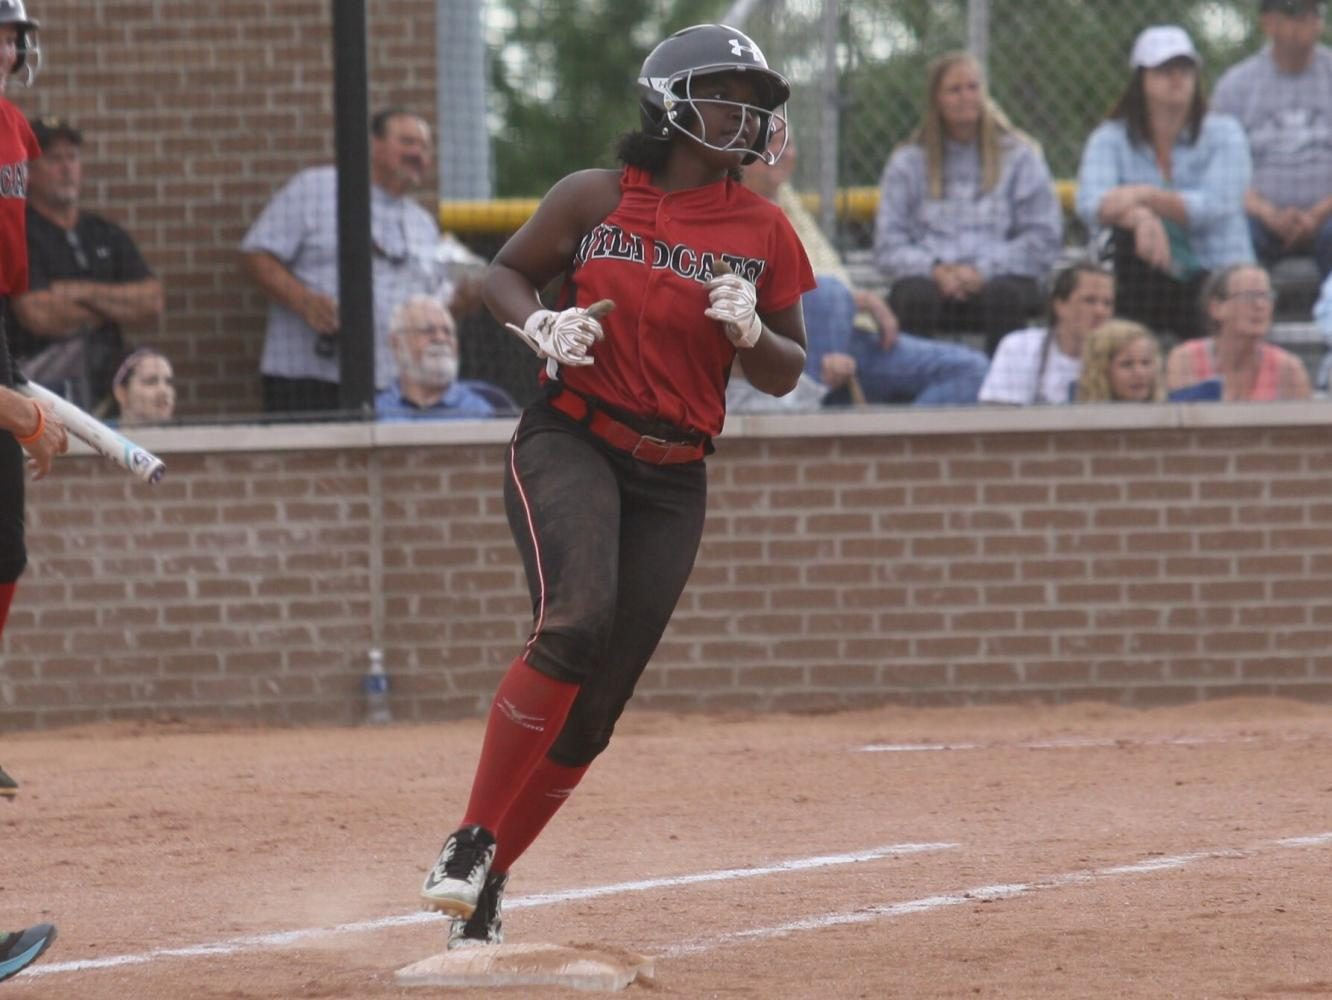 Softball sectional title showdown set for tonight